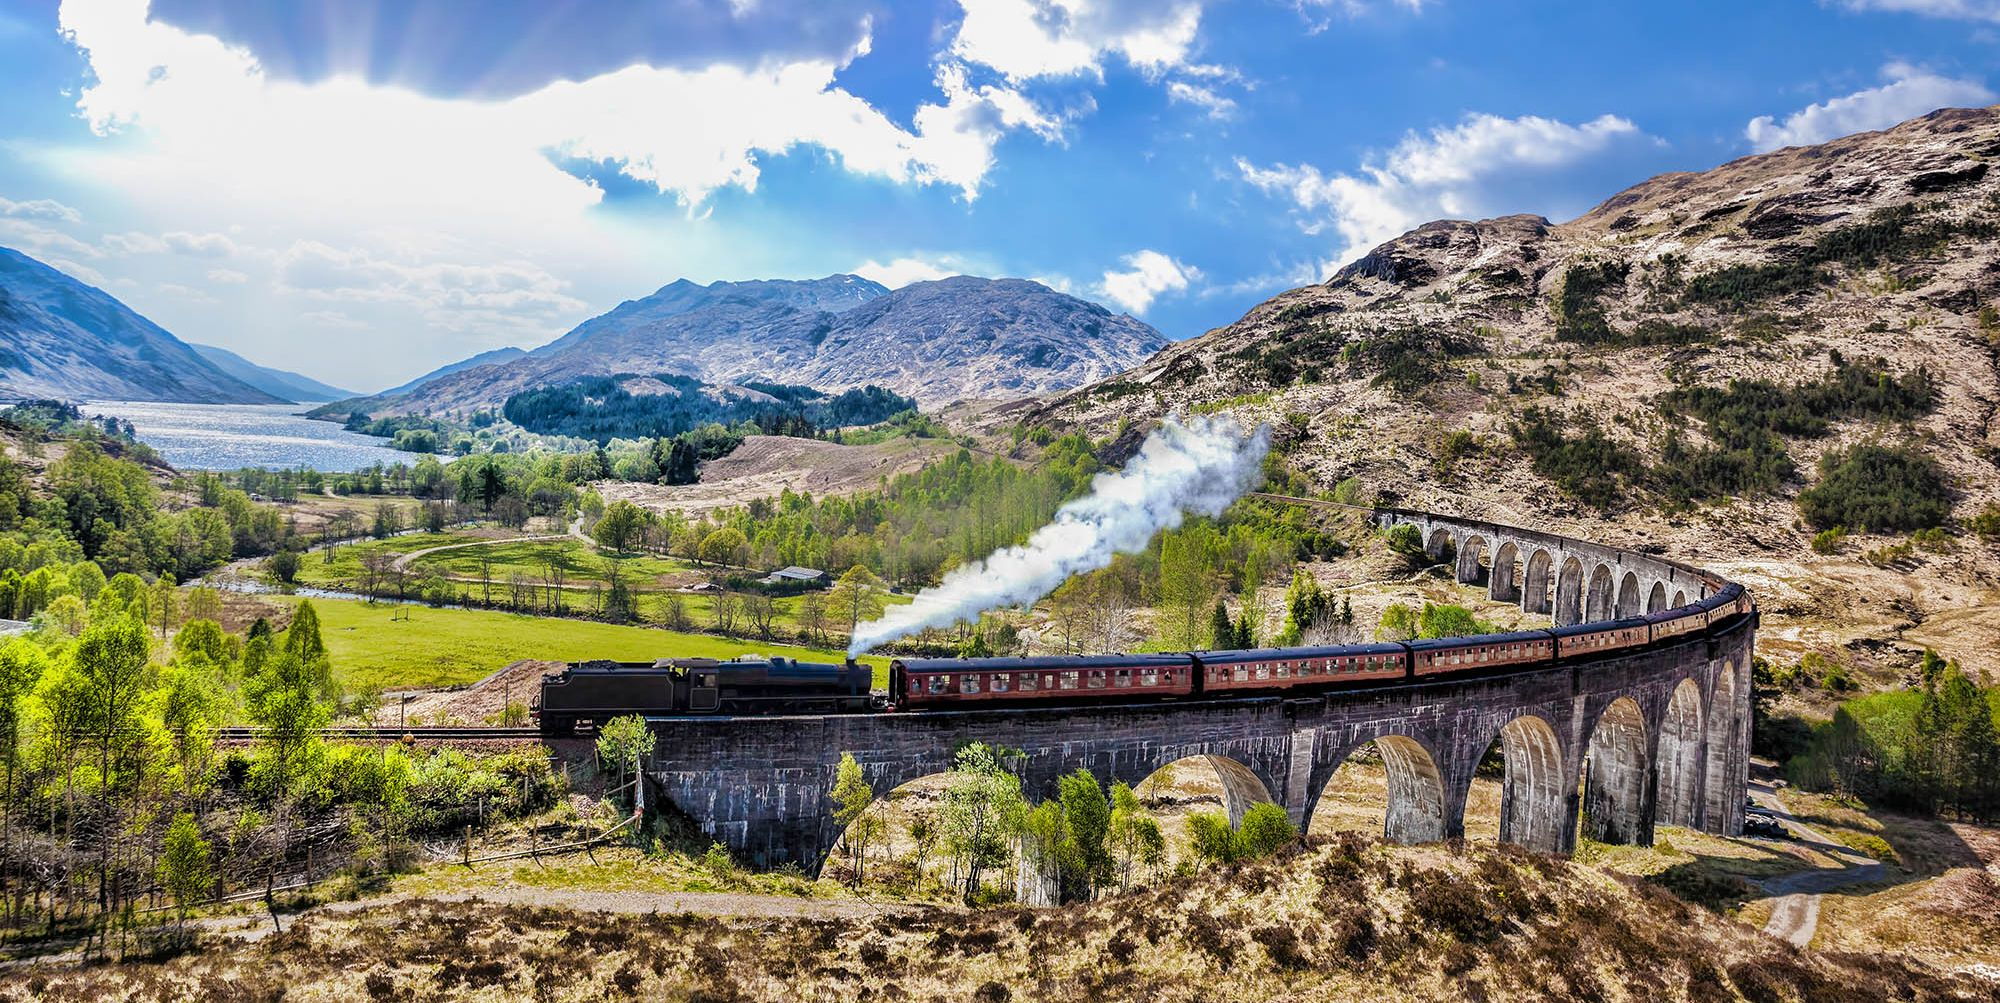 This dreamy trip explores the Scottish Highlands by steam train and boat